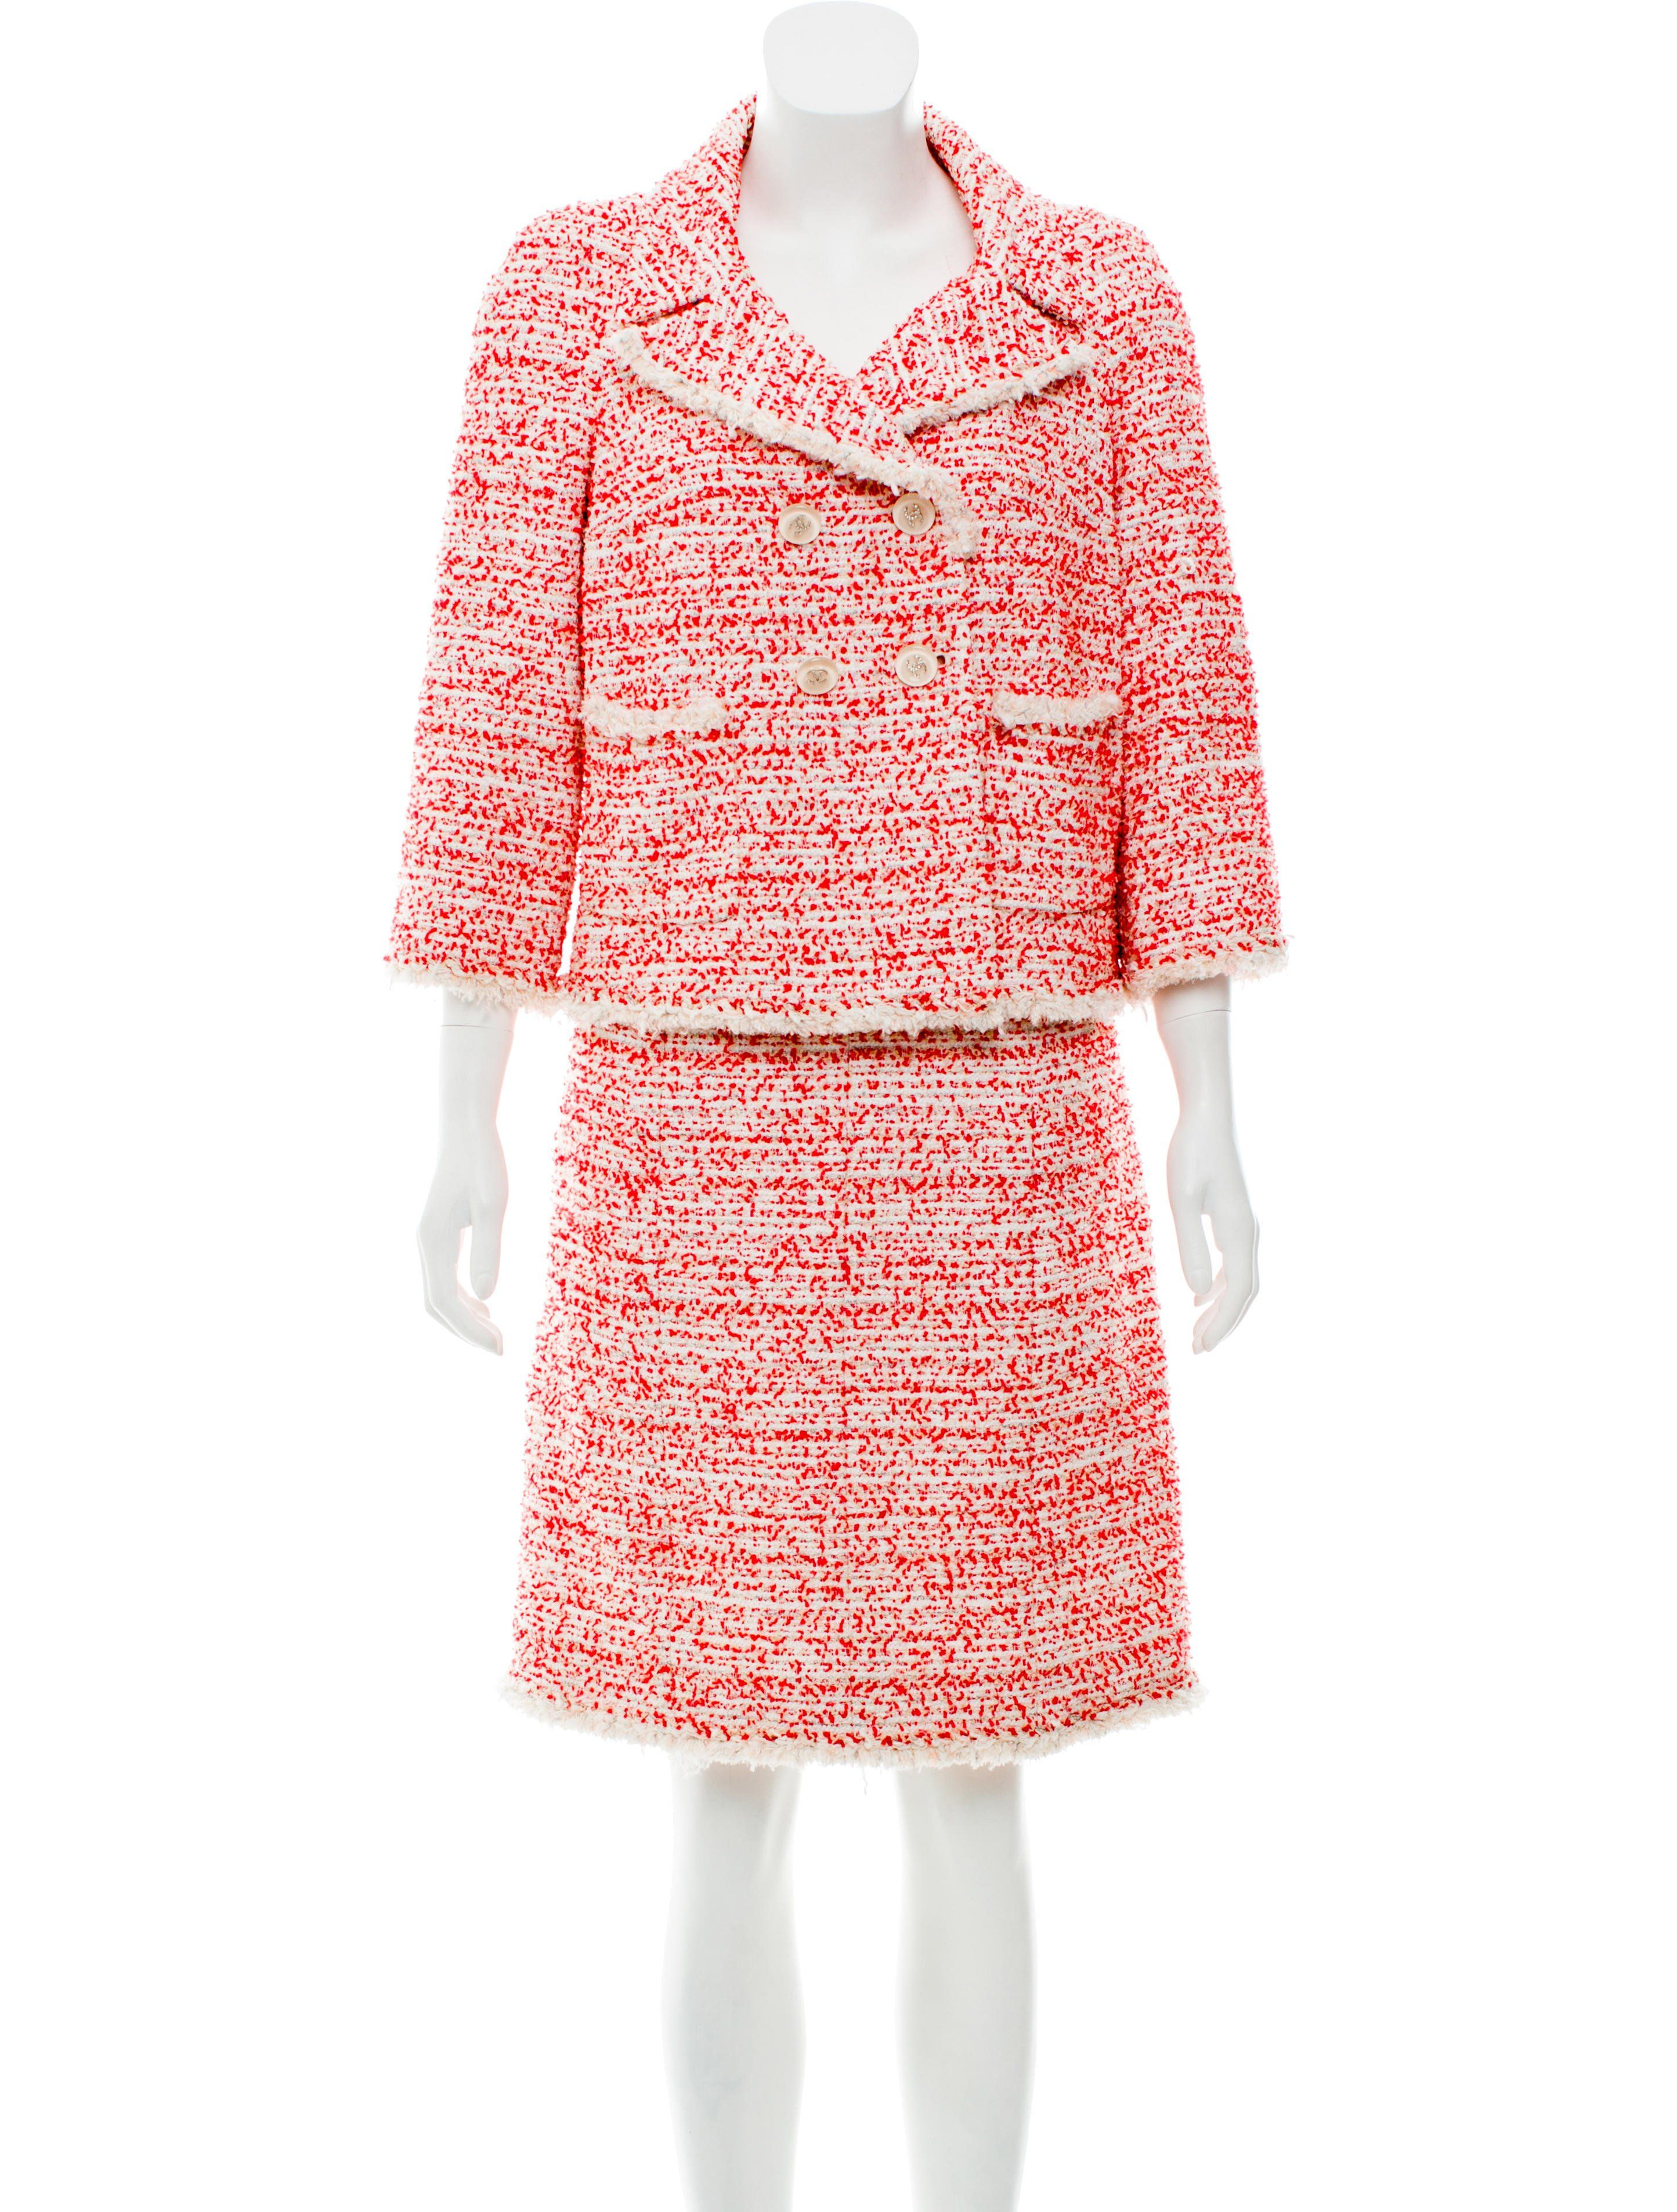 8ab1dca687b96d Tweed Double-Breasted Skirt Suit Tweed Skirt, Skirt Suit, Chanel Style  Jacket,